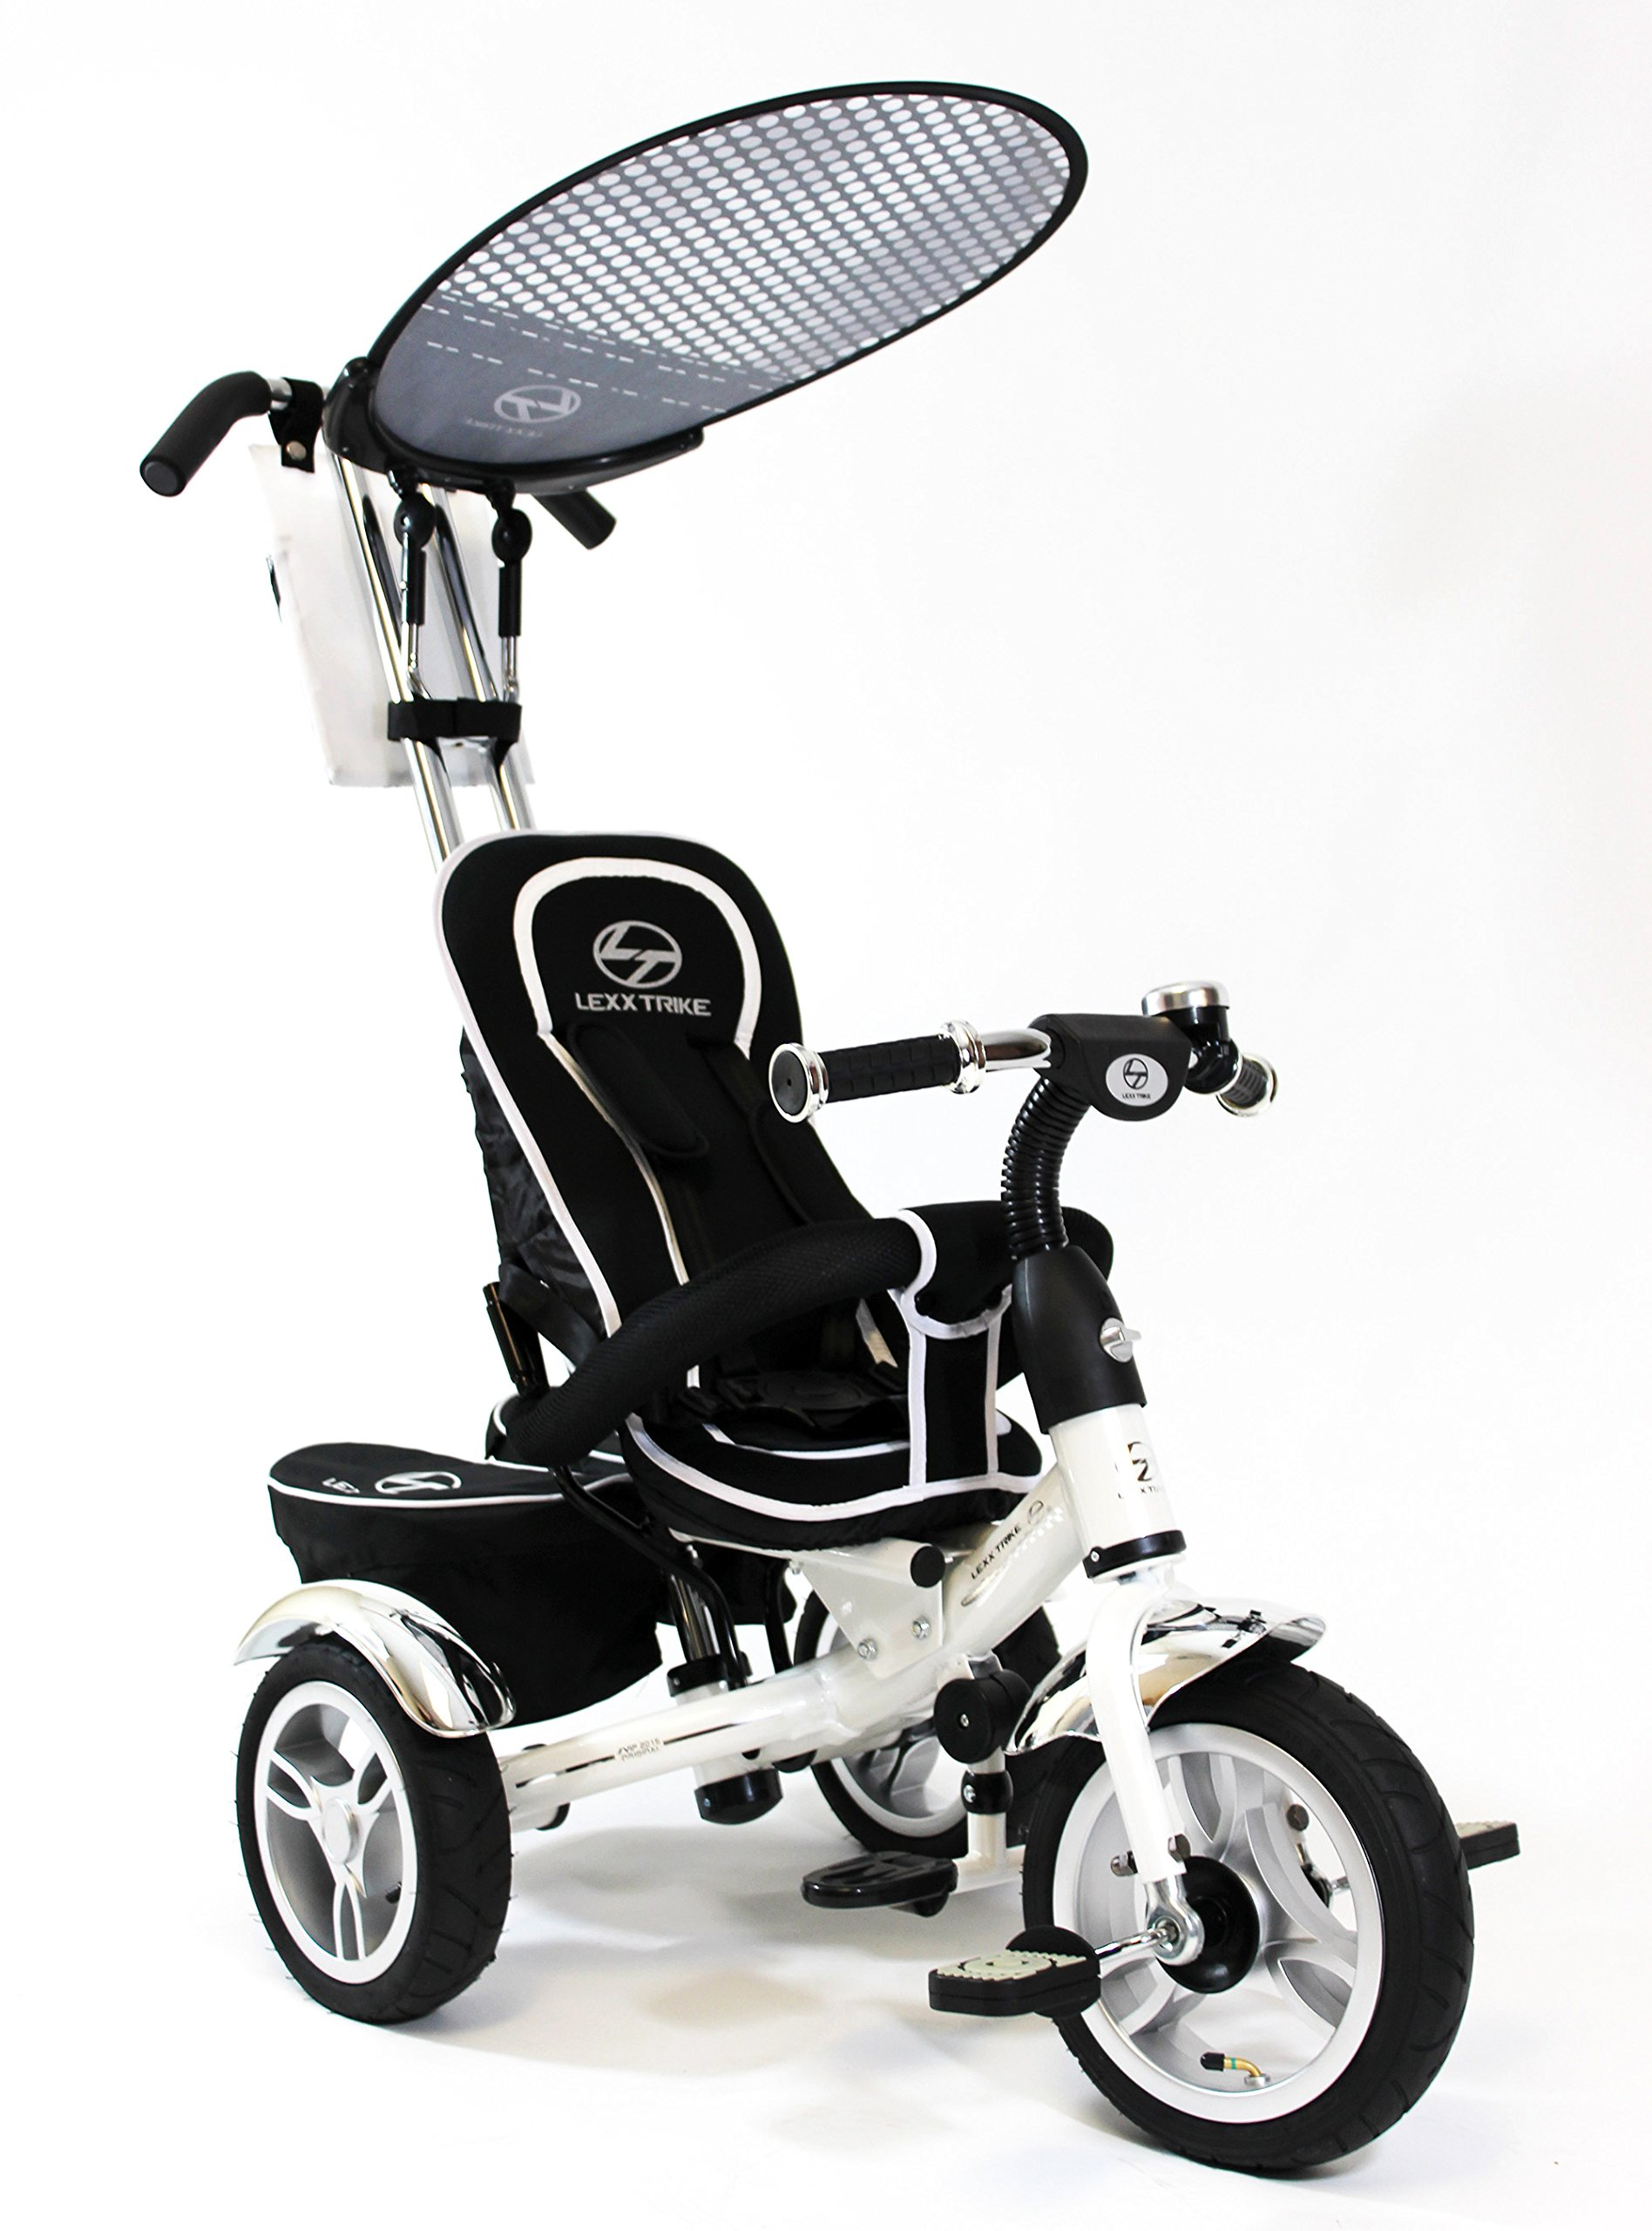 Lexx Trike 4in1 VIP Smart Kid's Tricycle 3 Wheel Bike Removable Handle & Canopy NEW WHITE